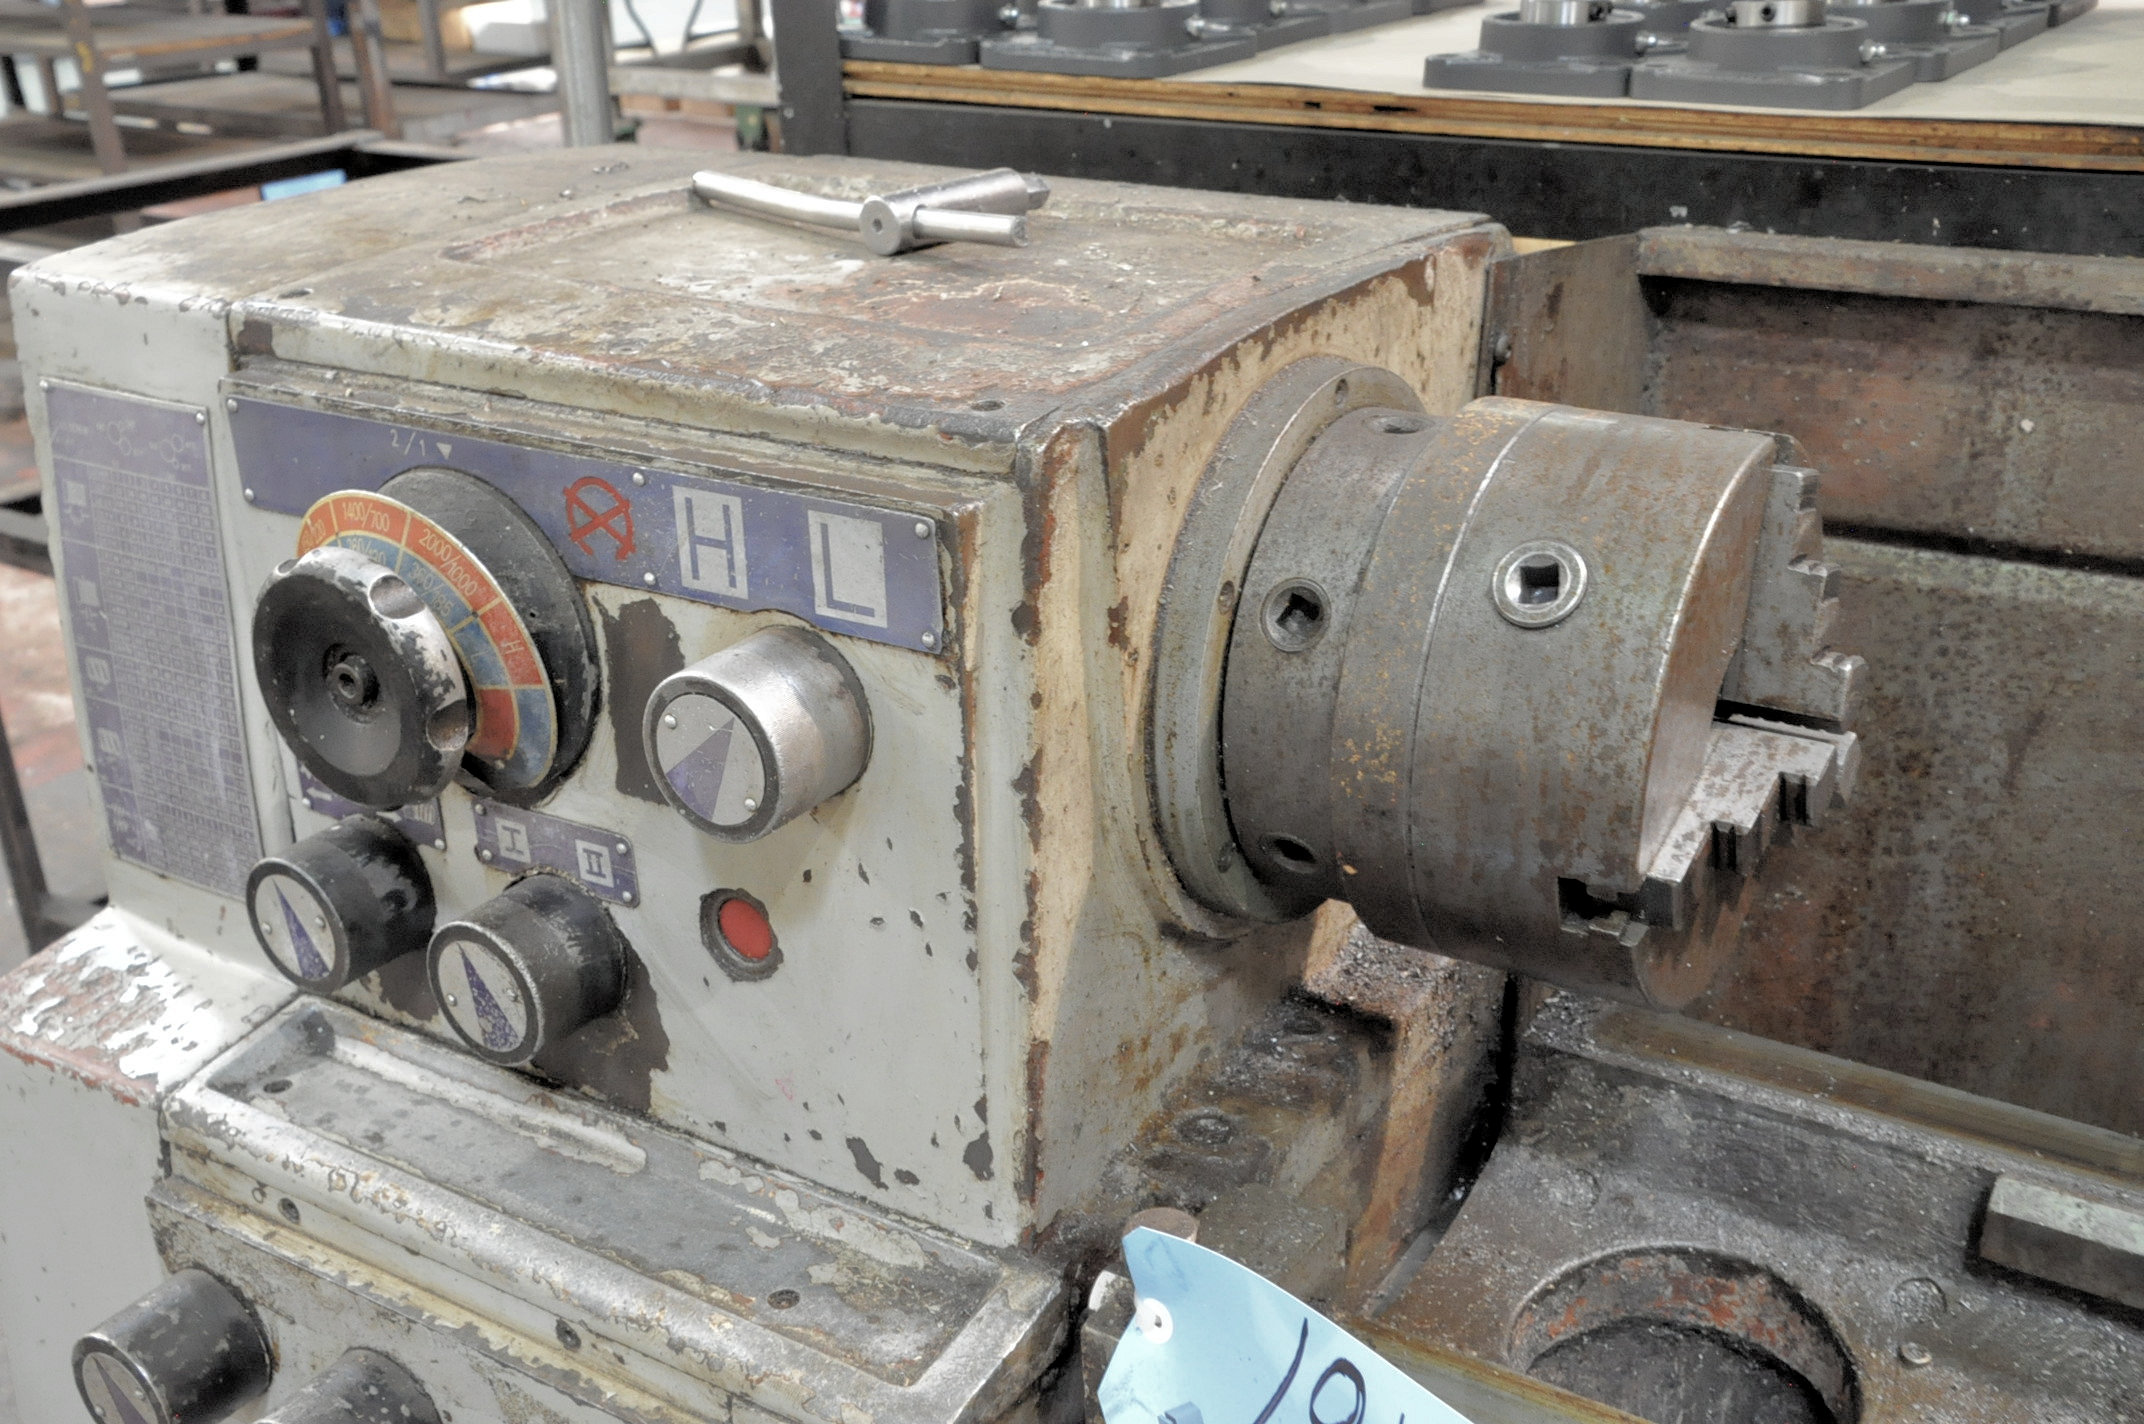 """LS Model 1660G, 16"""" x 60"""" Geared Head Engine Lathe, (1994), 8"""" 3-Jaw Chuck, Tool Post, Tail Stock - Image 2 of 6"""